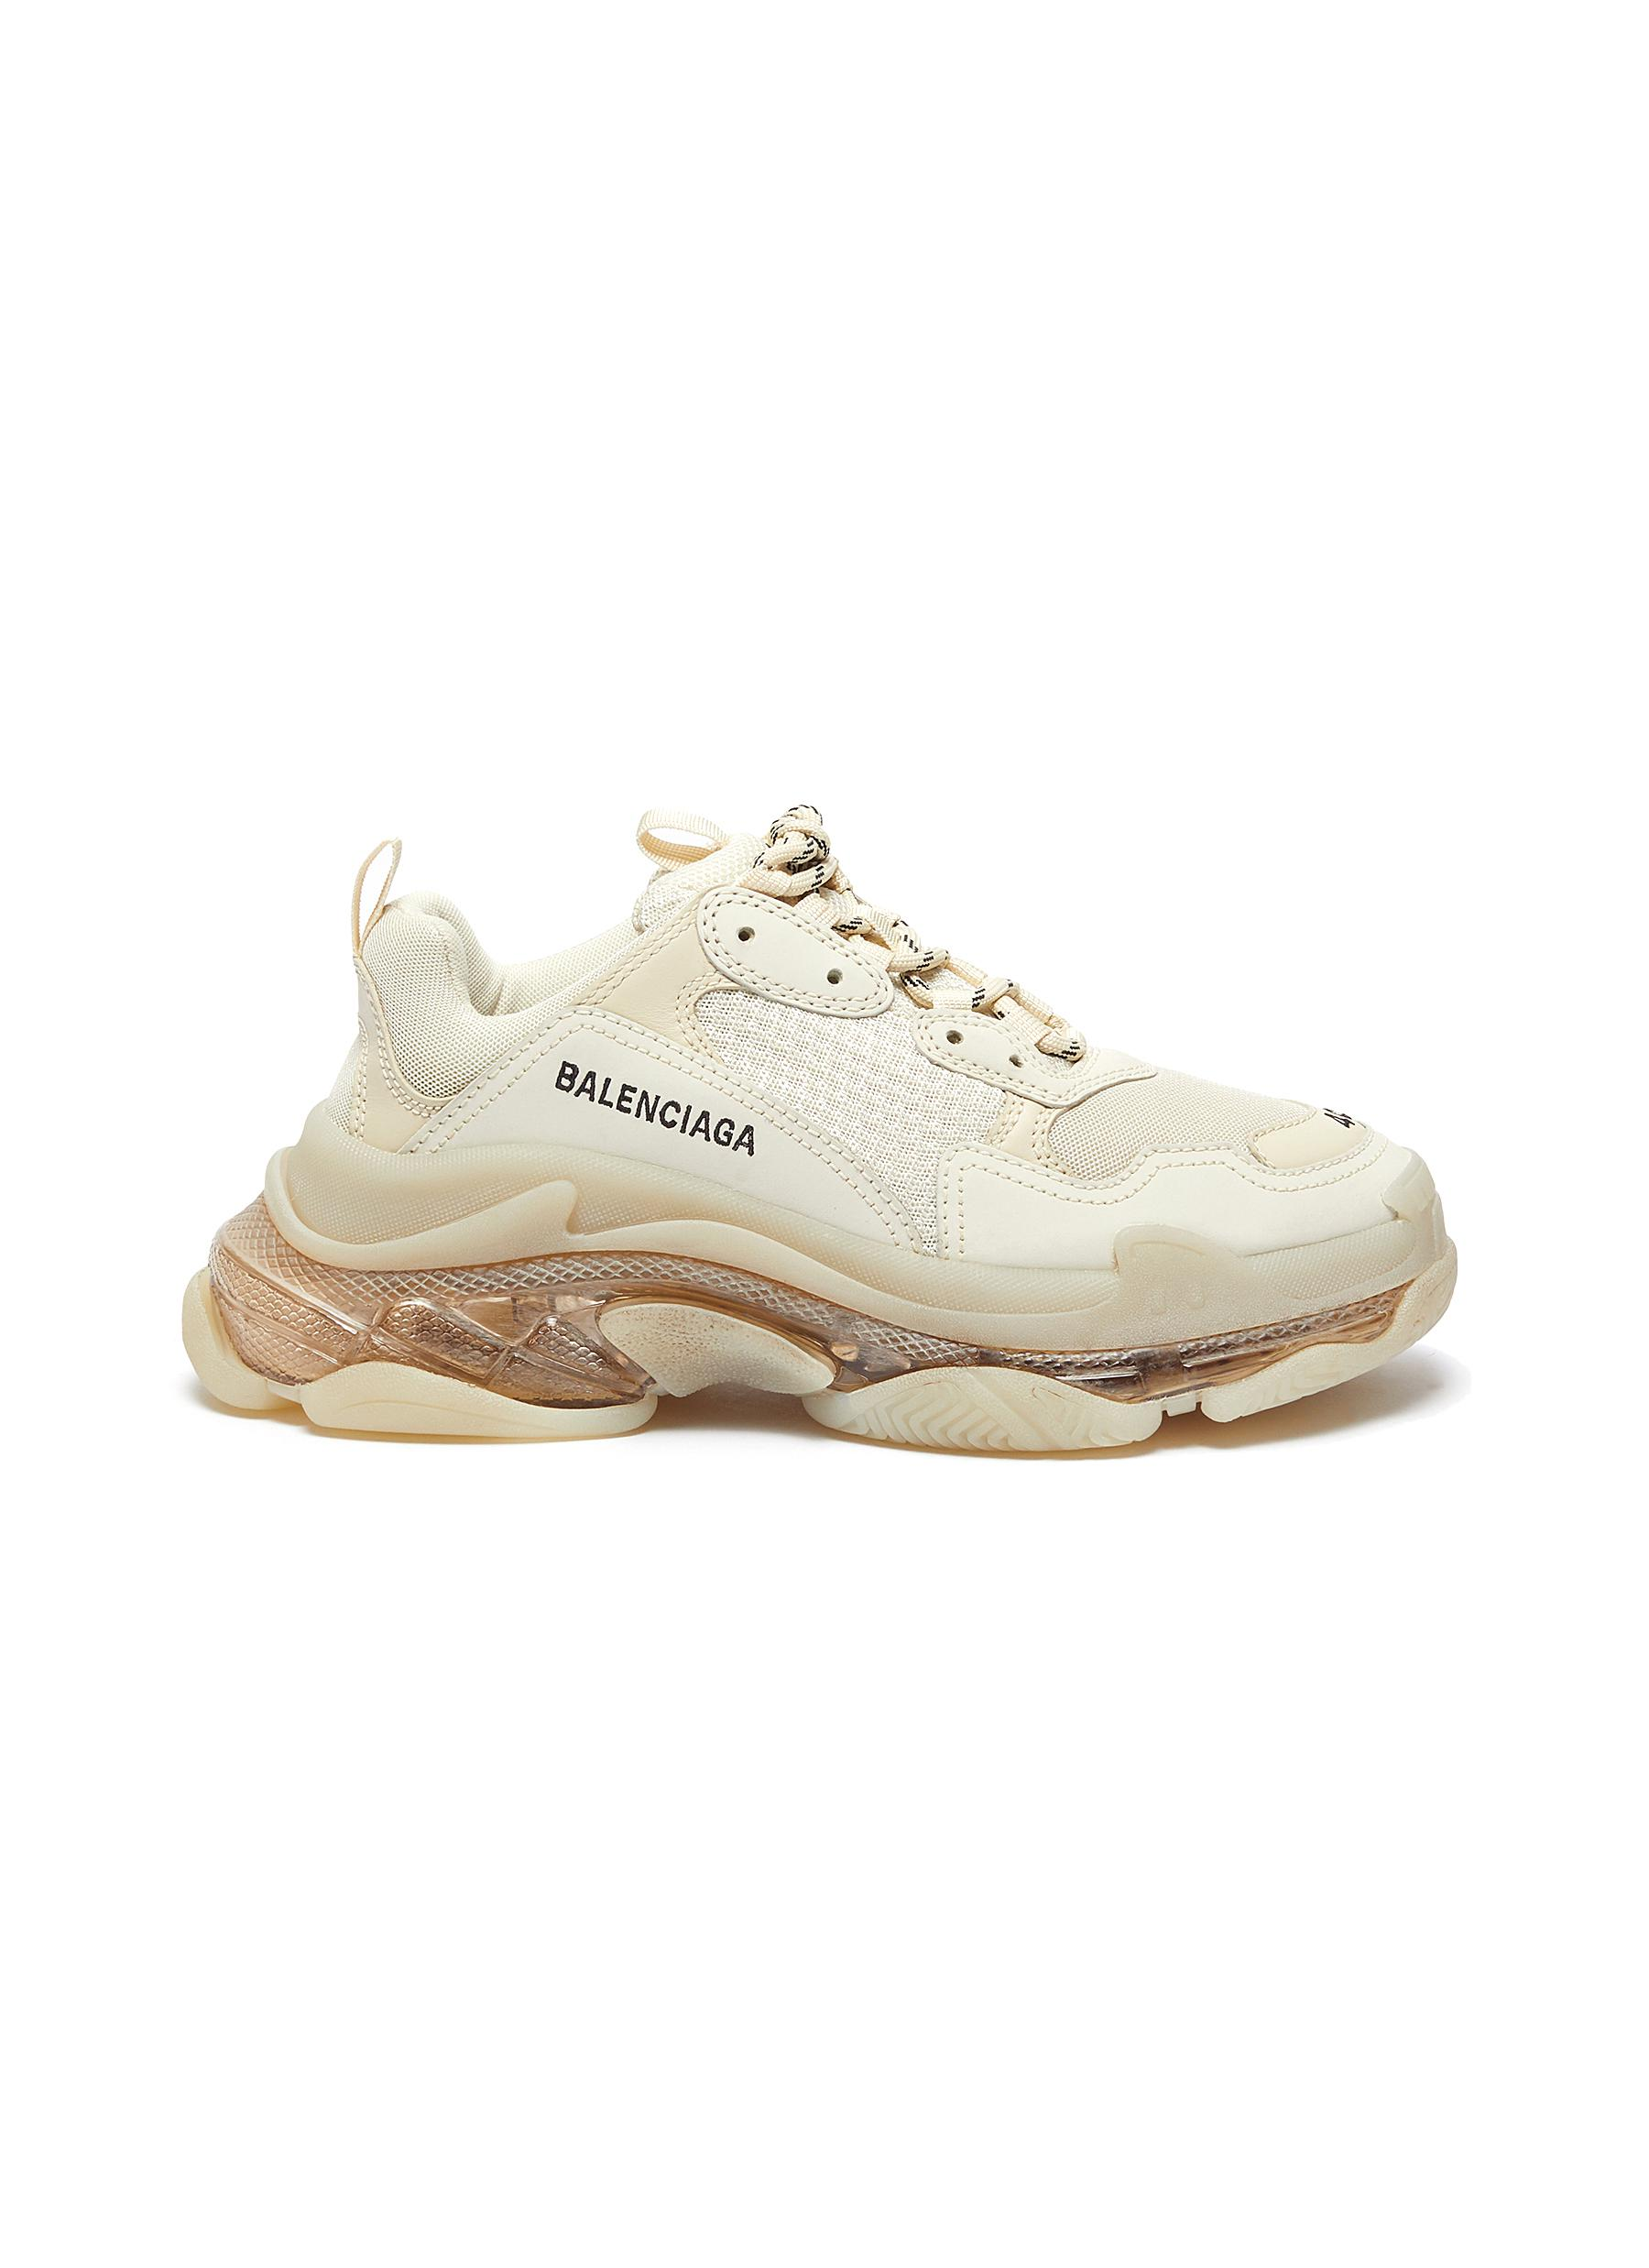 Triple S' stack midsole clear sole